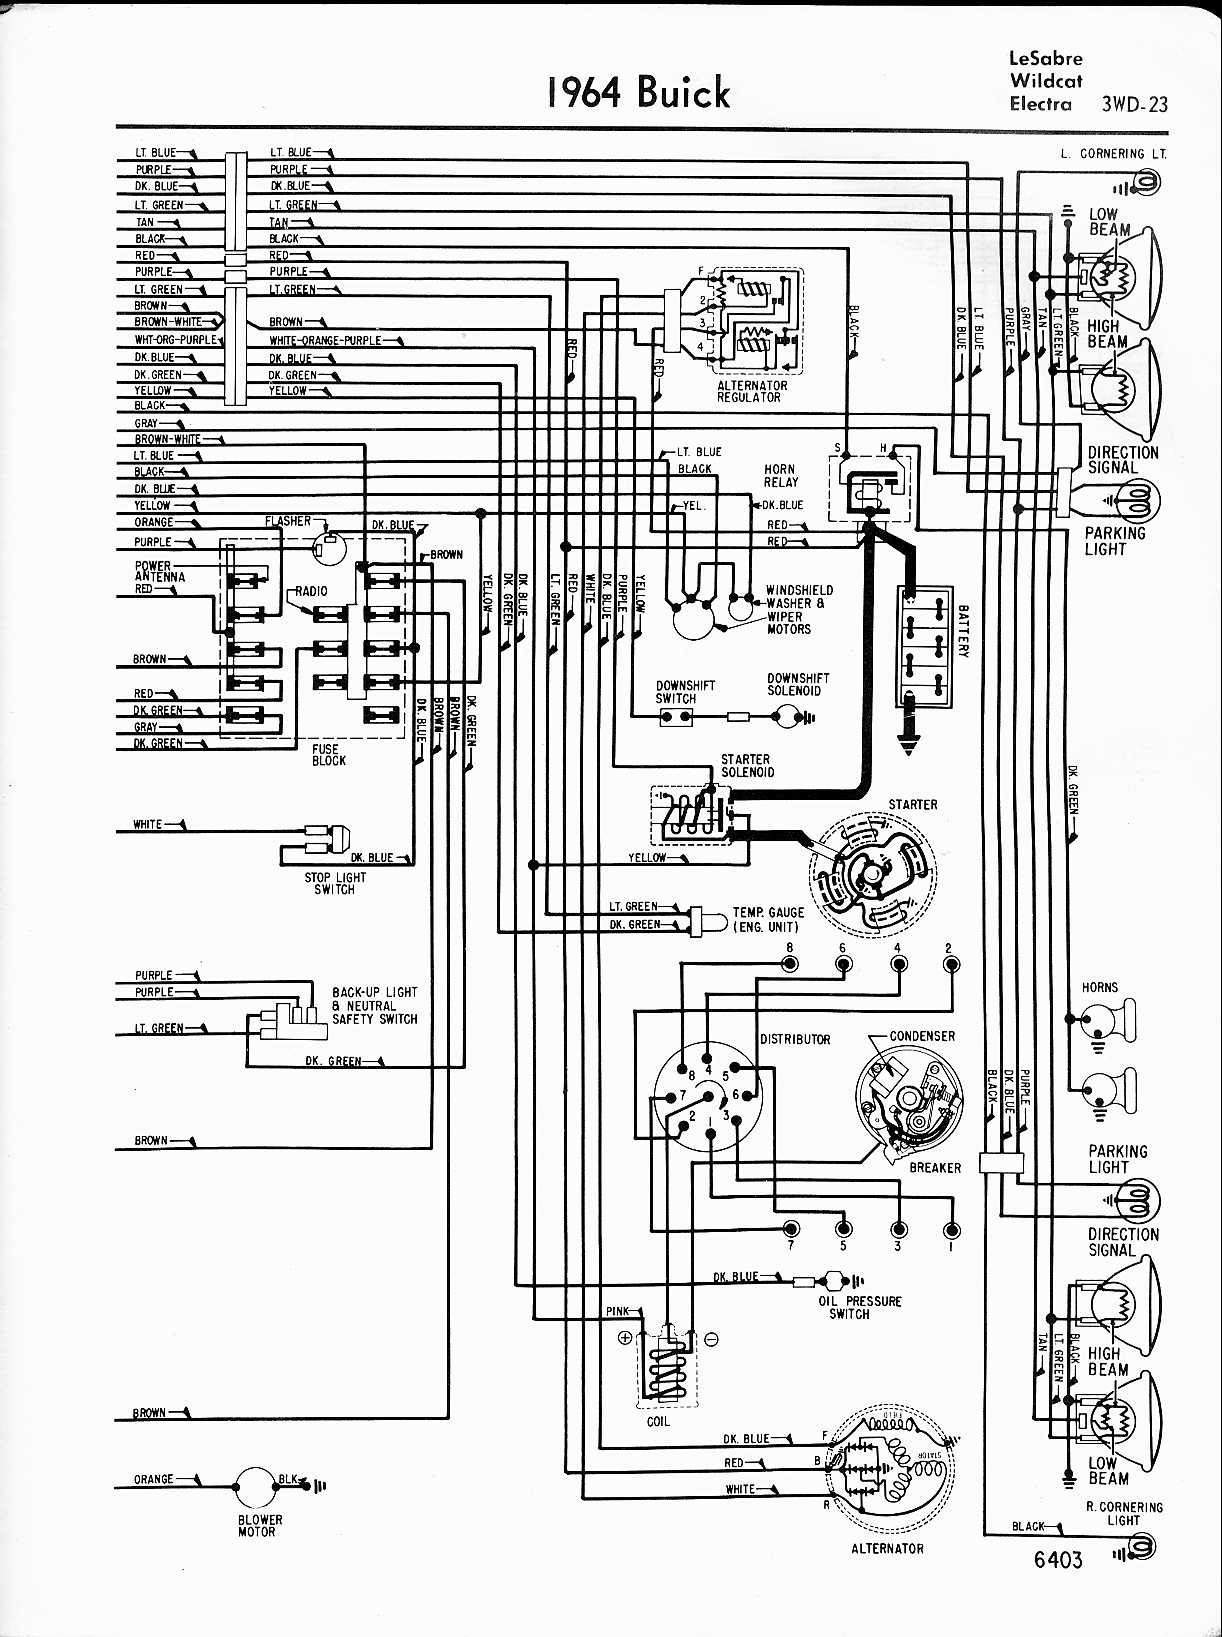 2002 Buick Century Trunk Wiring Schema Wiring Diagrams Agency Stovk Agency Stovk Primopianobenefit It